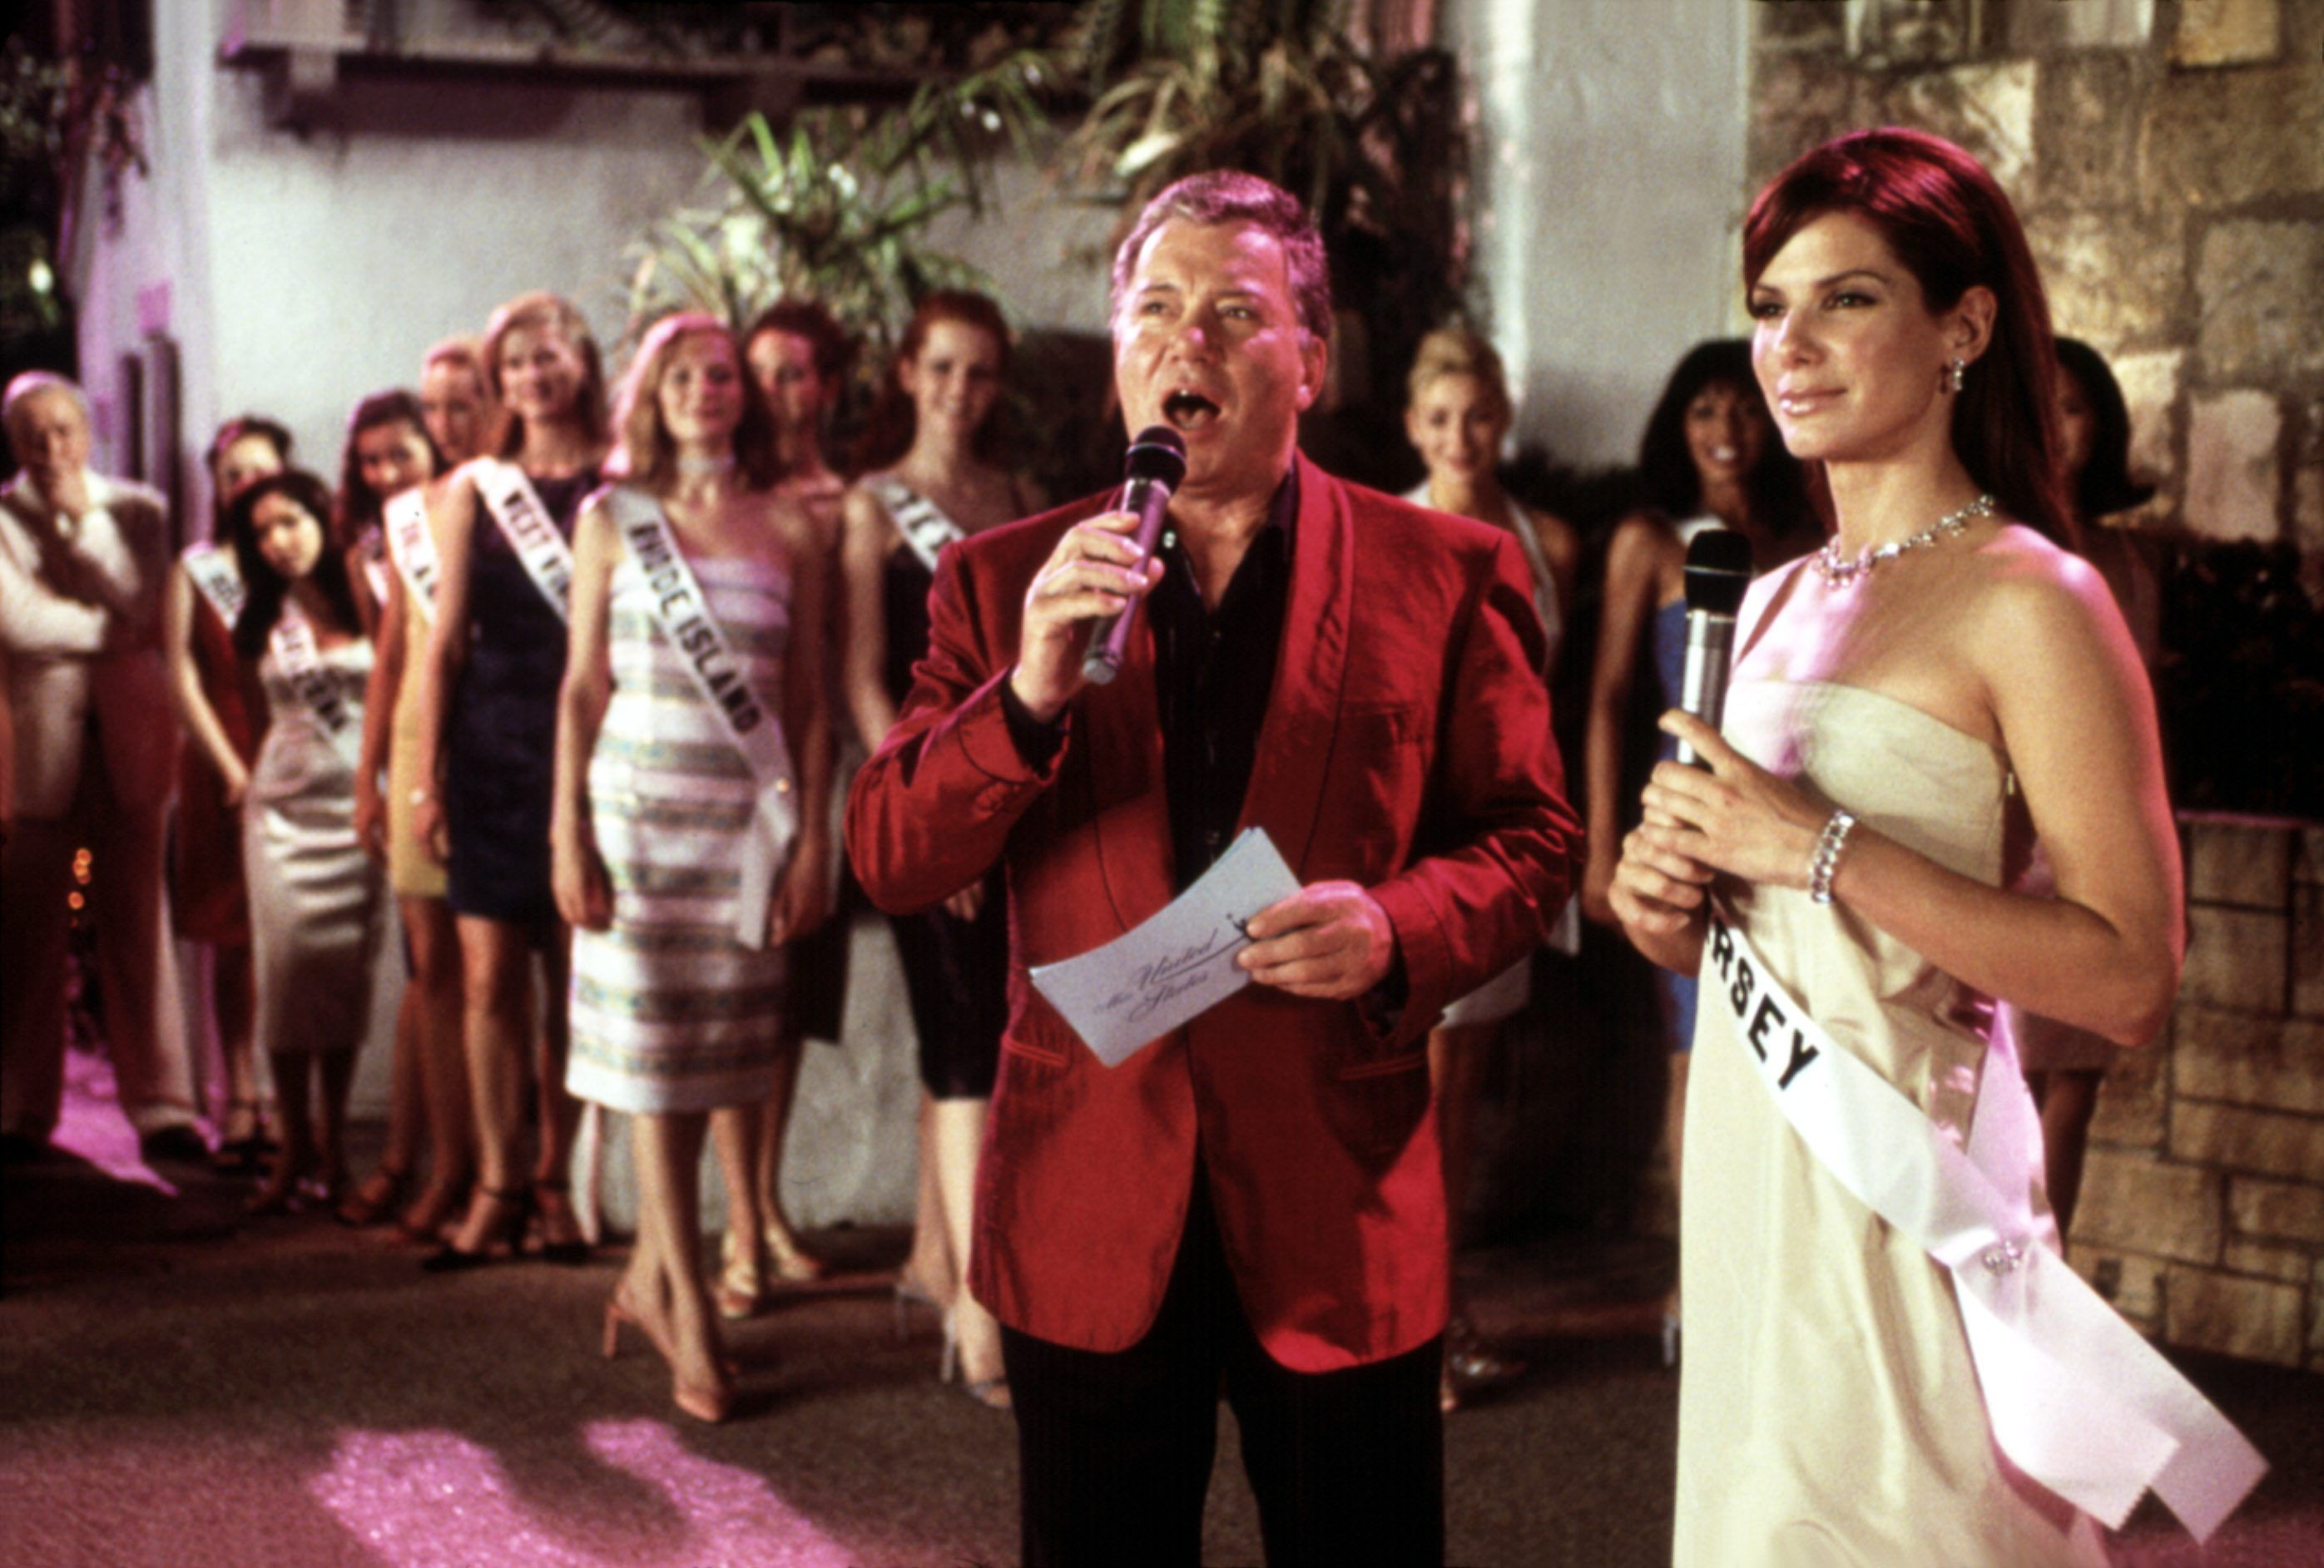 Things You Might Not Know About 'Miss Congeniality' - Fame10